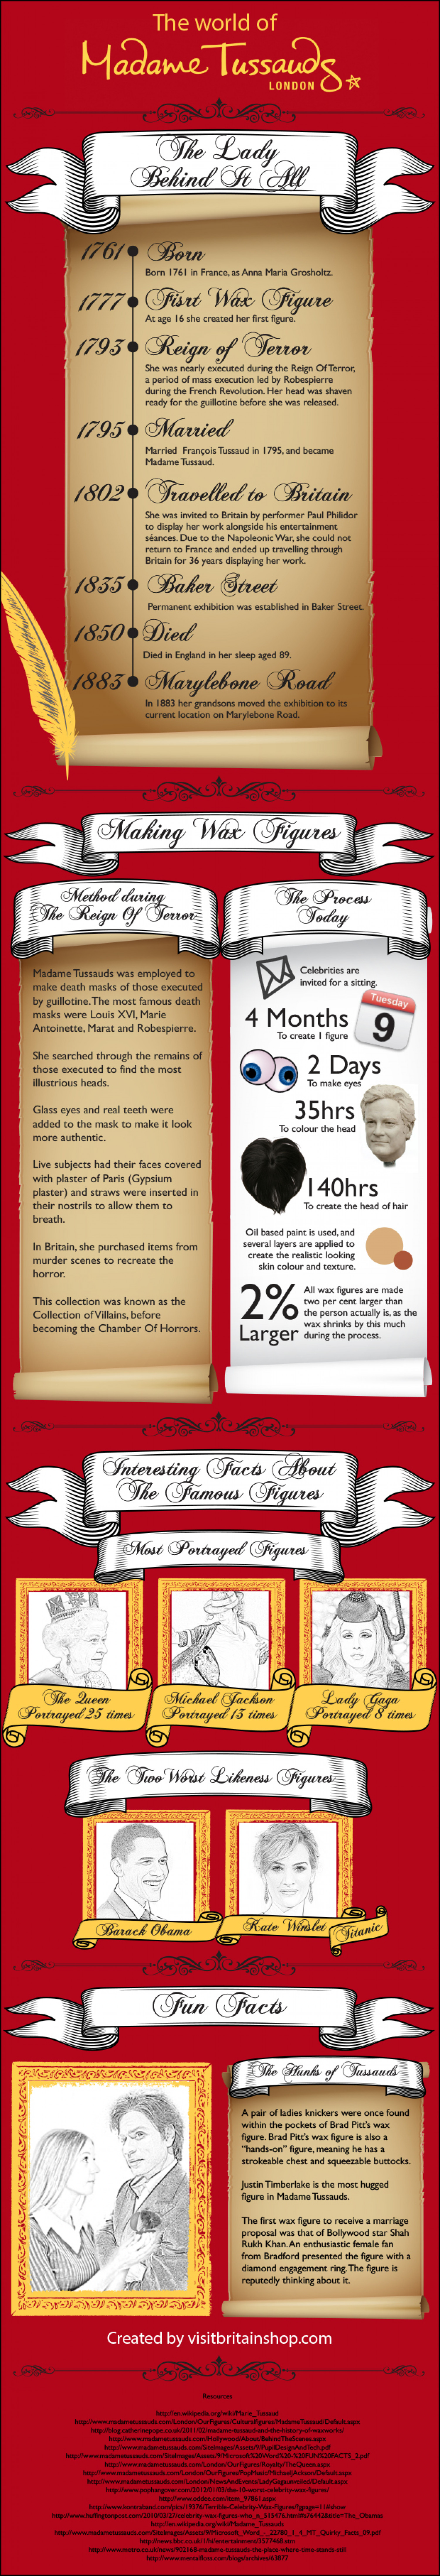 The World Of Madame Tussauds Infographic